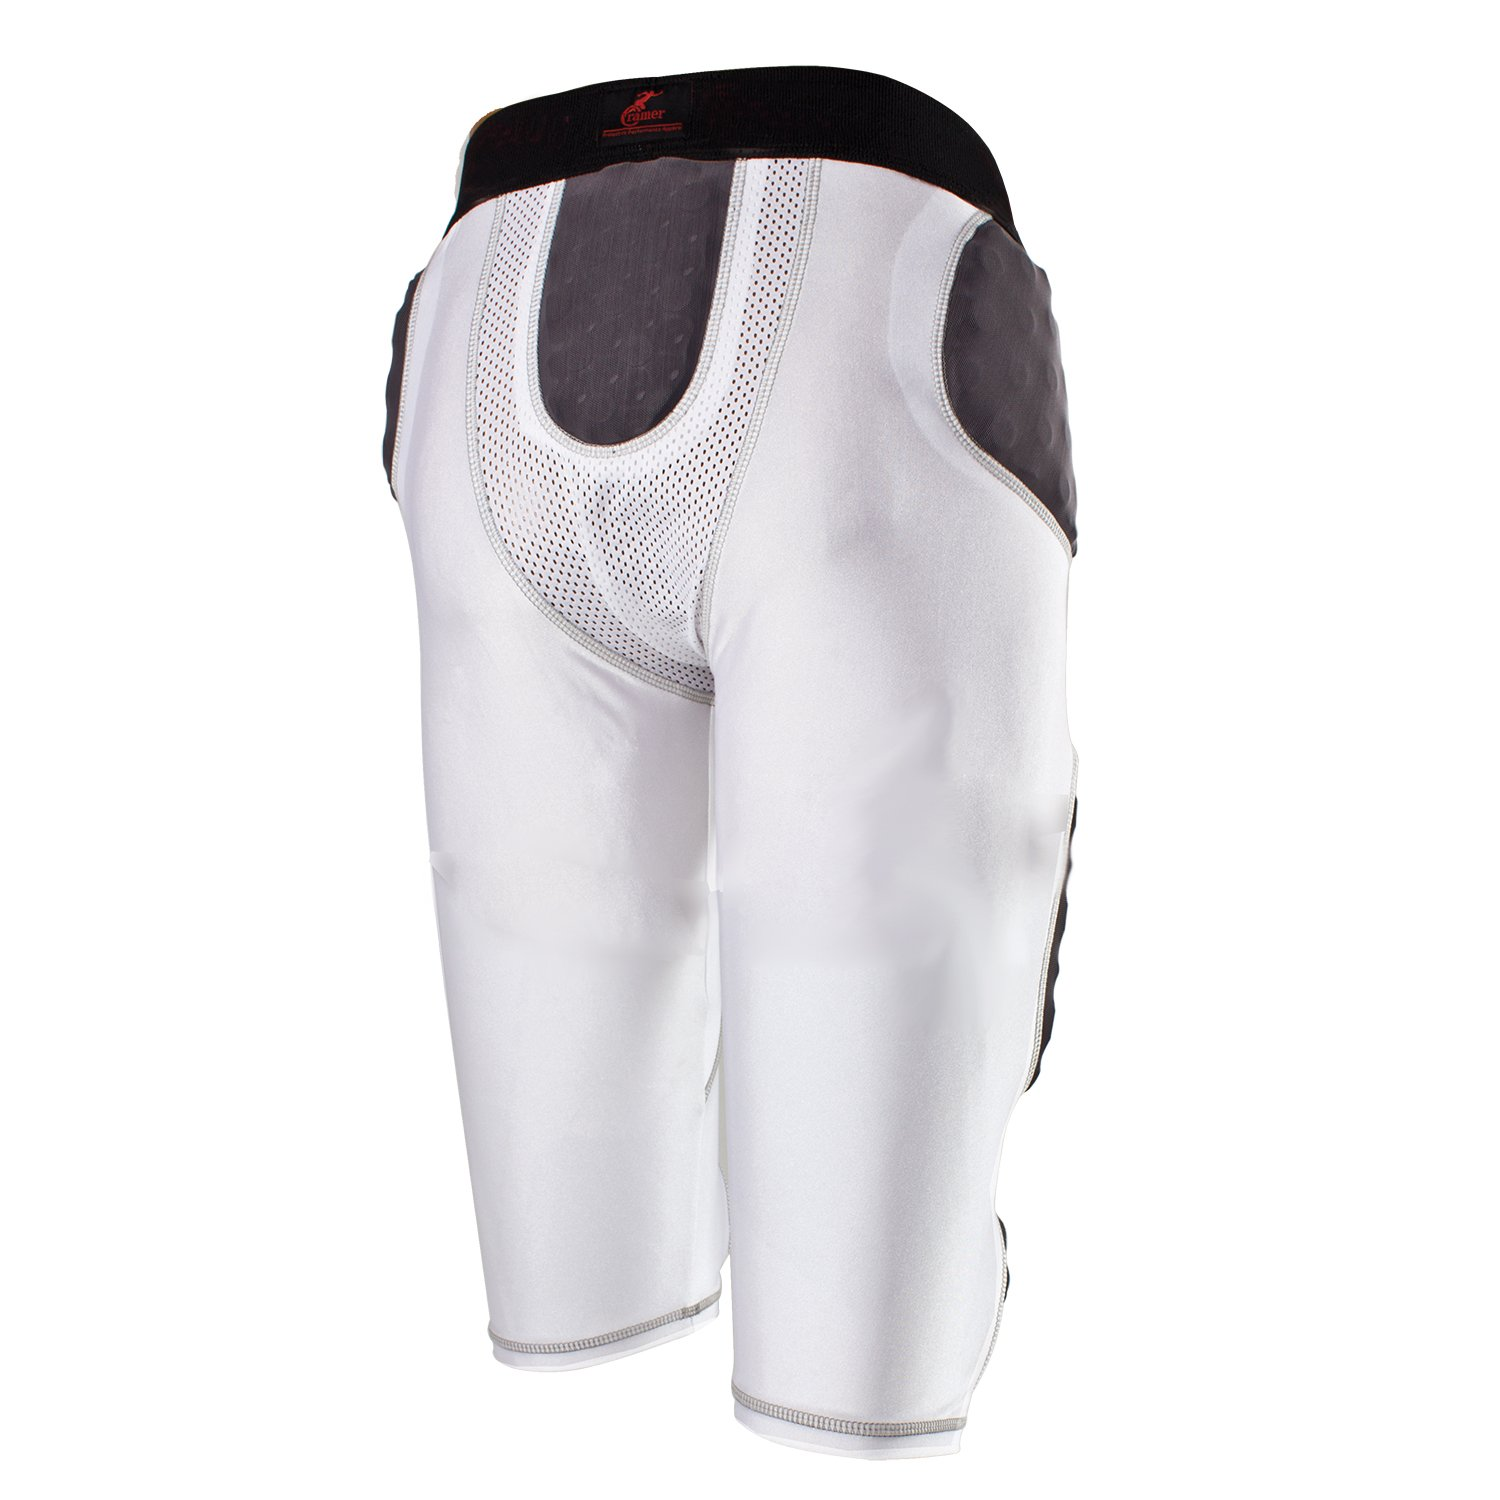 Cramer Lightning 7 Pad Football Girdle With Integrated Hip, Tailbone and Thigh Pads, Anti-Bacterial and Moisture-Wicking Fabric, Great Protection Without Impeding Athletic Performance, White, X-Large by Cramer (Image #3)